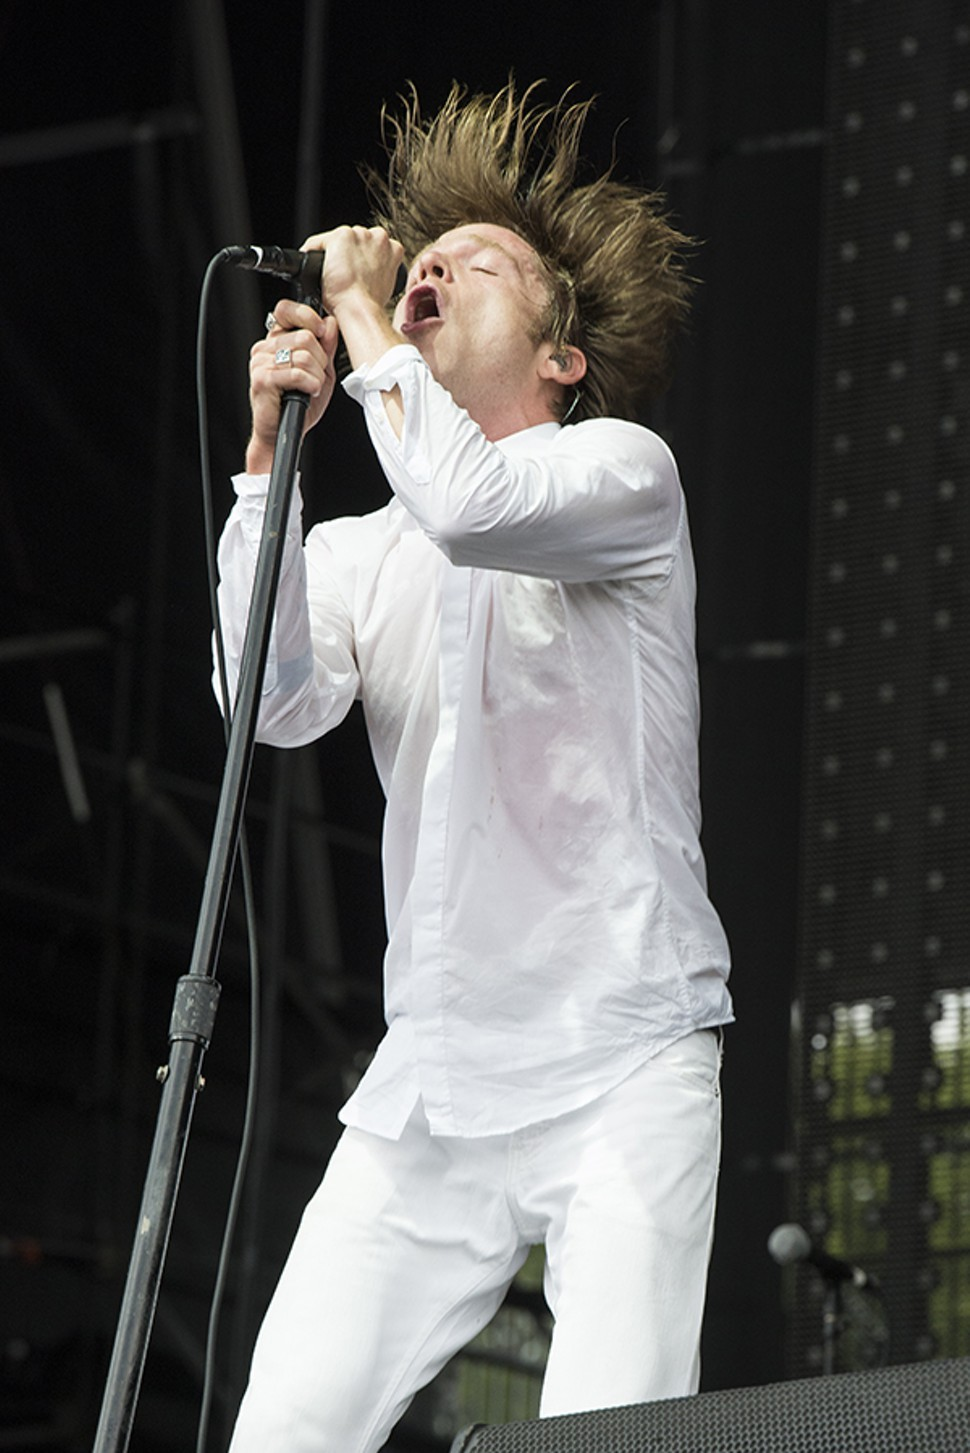 Matt Shultz from Cage the Elephant is about to ruin that outfit in the mud.